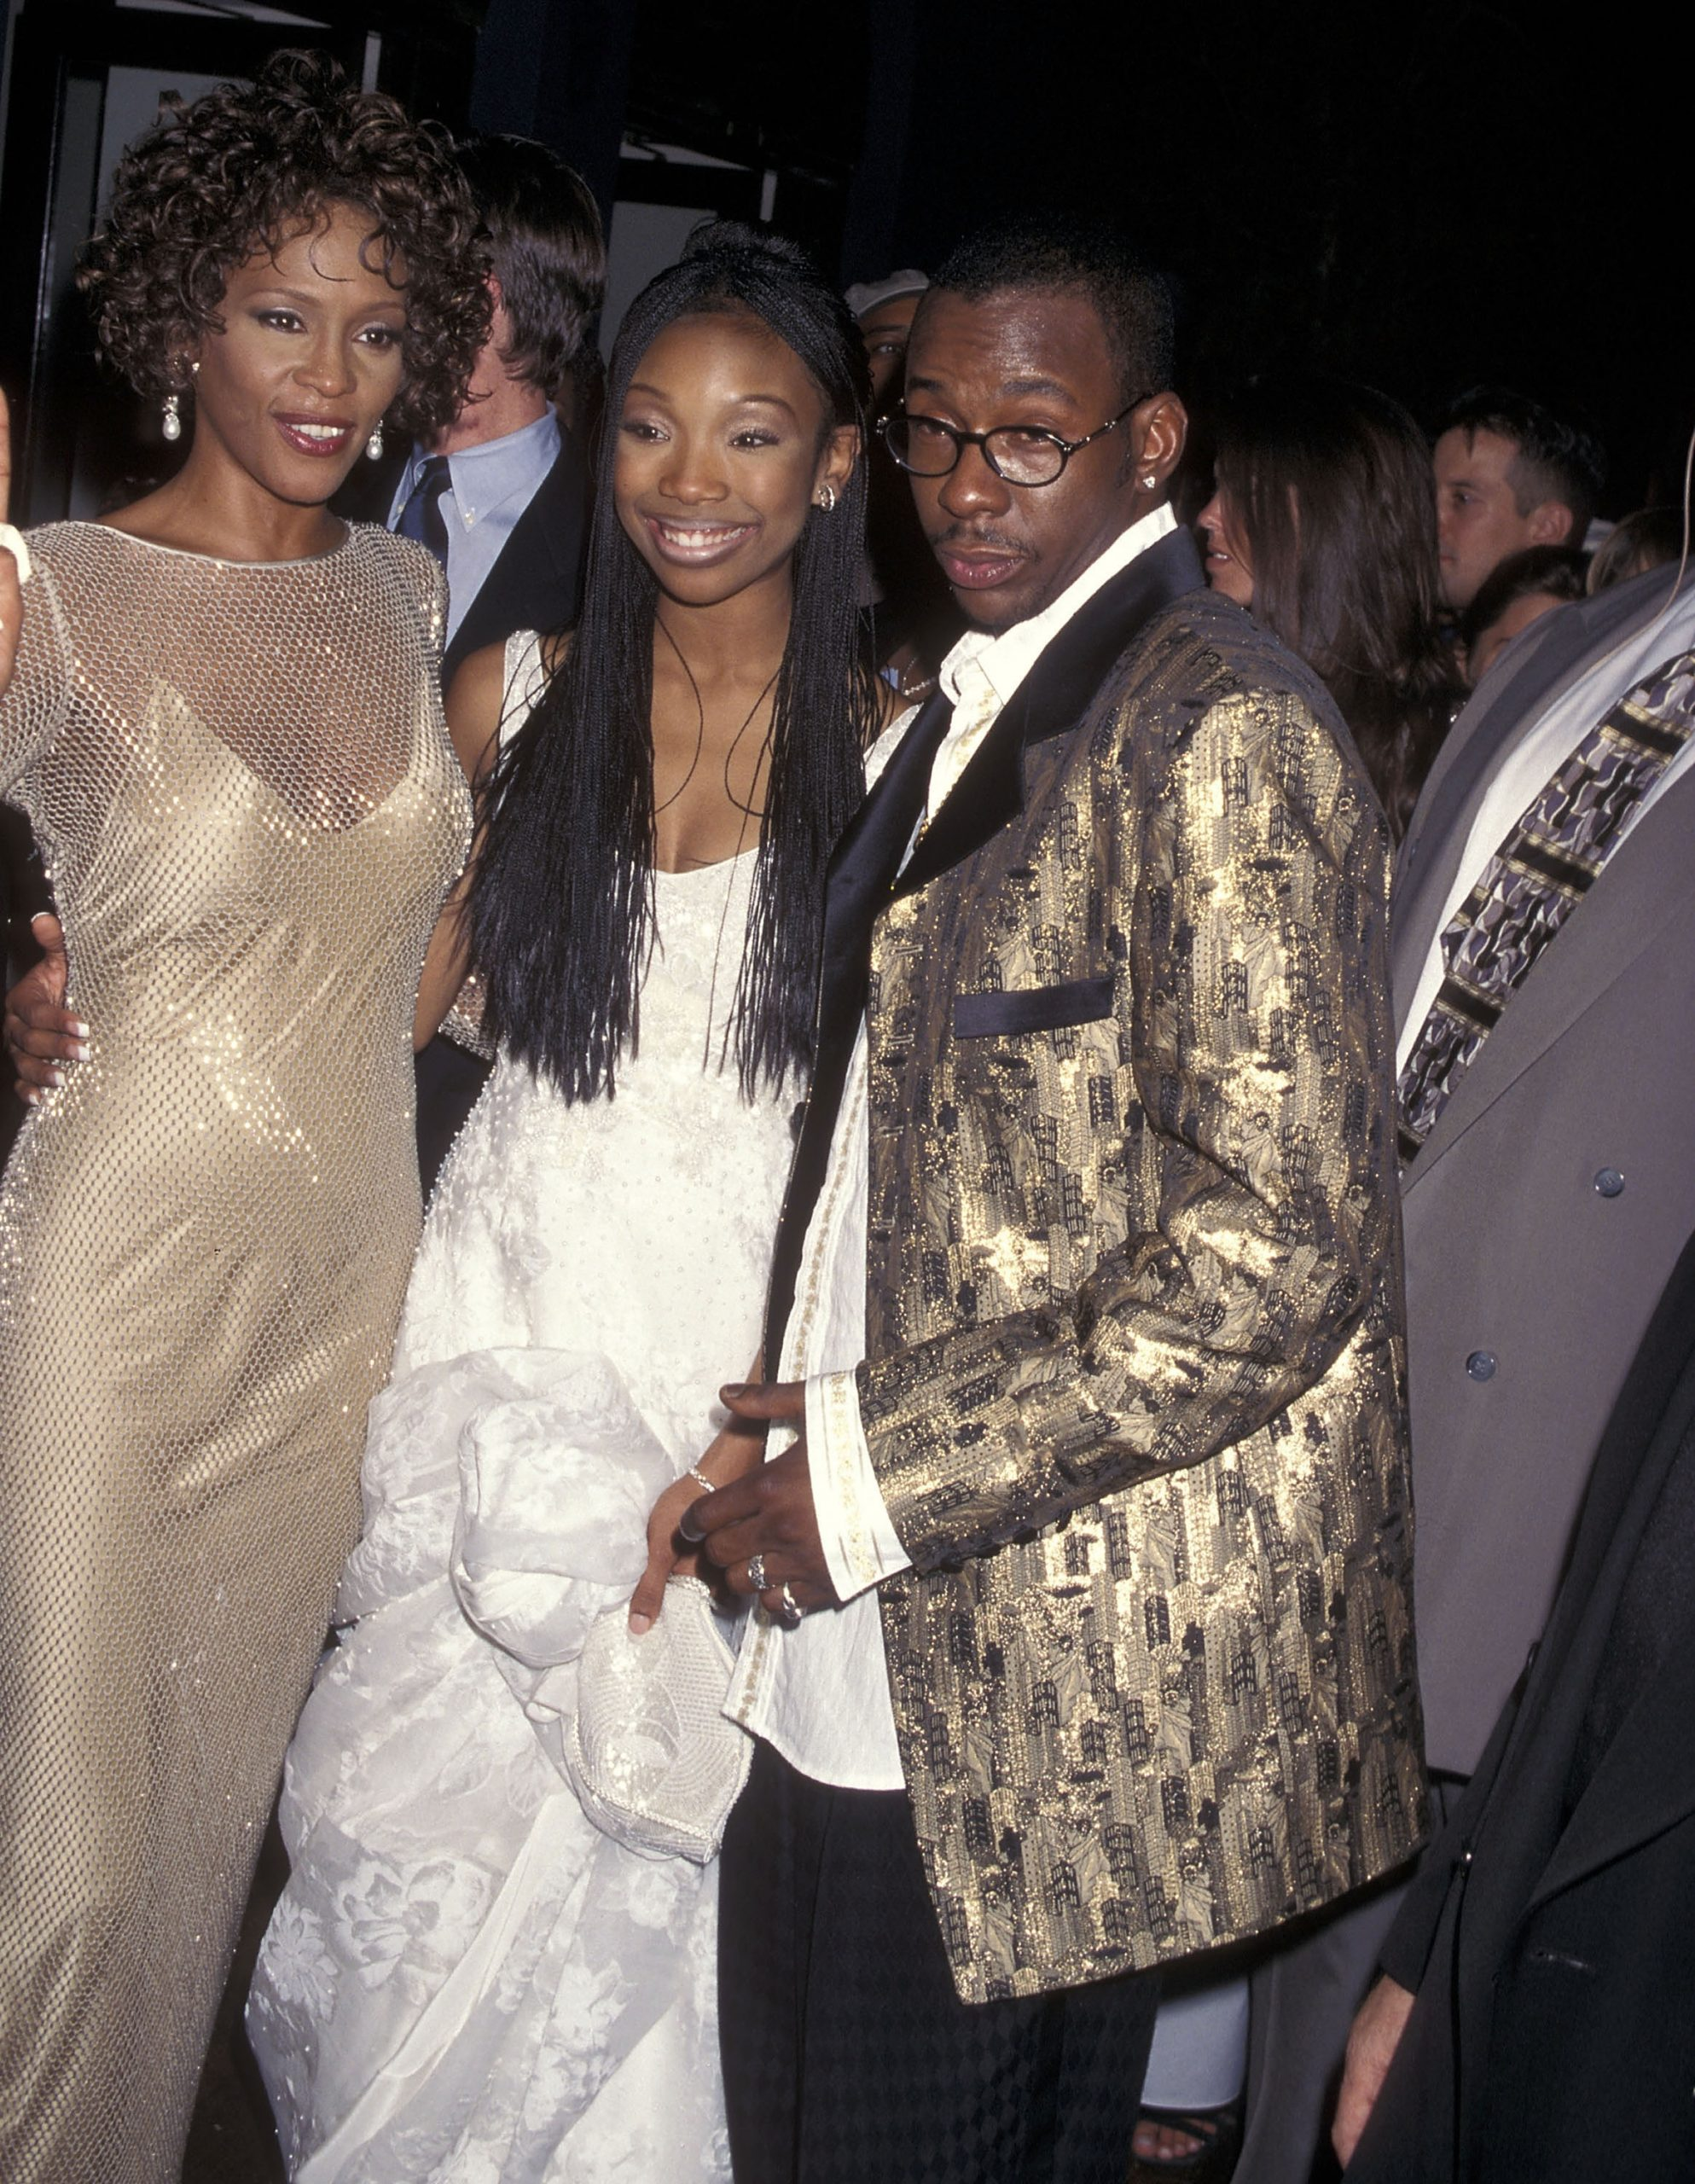 'Cinderella stars Whitney Houston in a gold dress and Brandy in a white dress. Bobby Brown in a black and gold blazer with glasses.